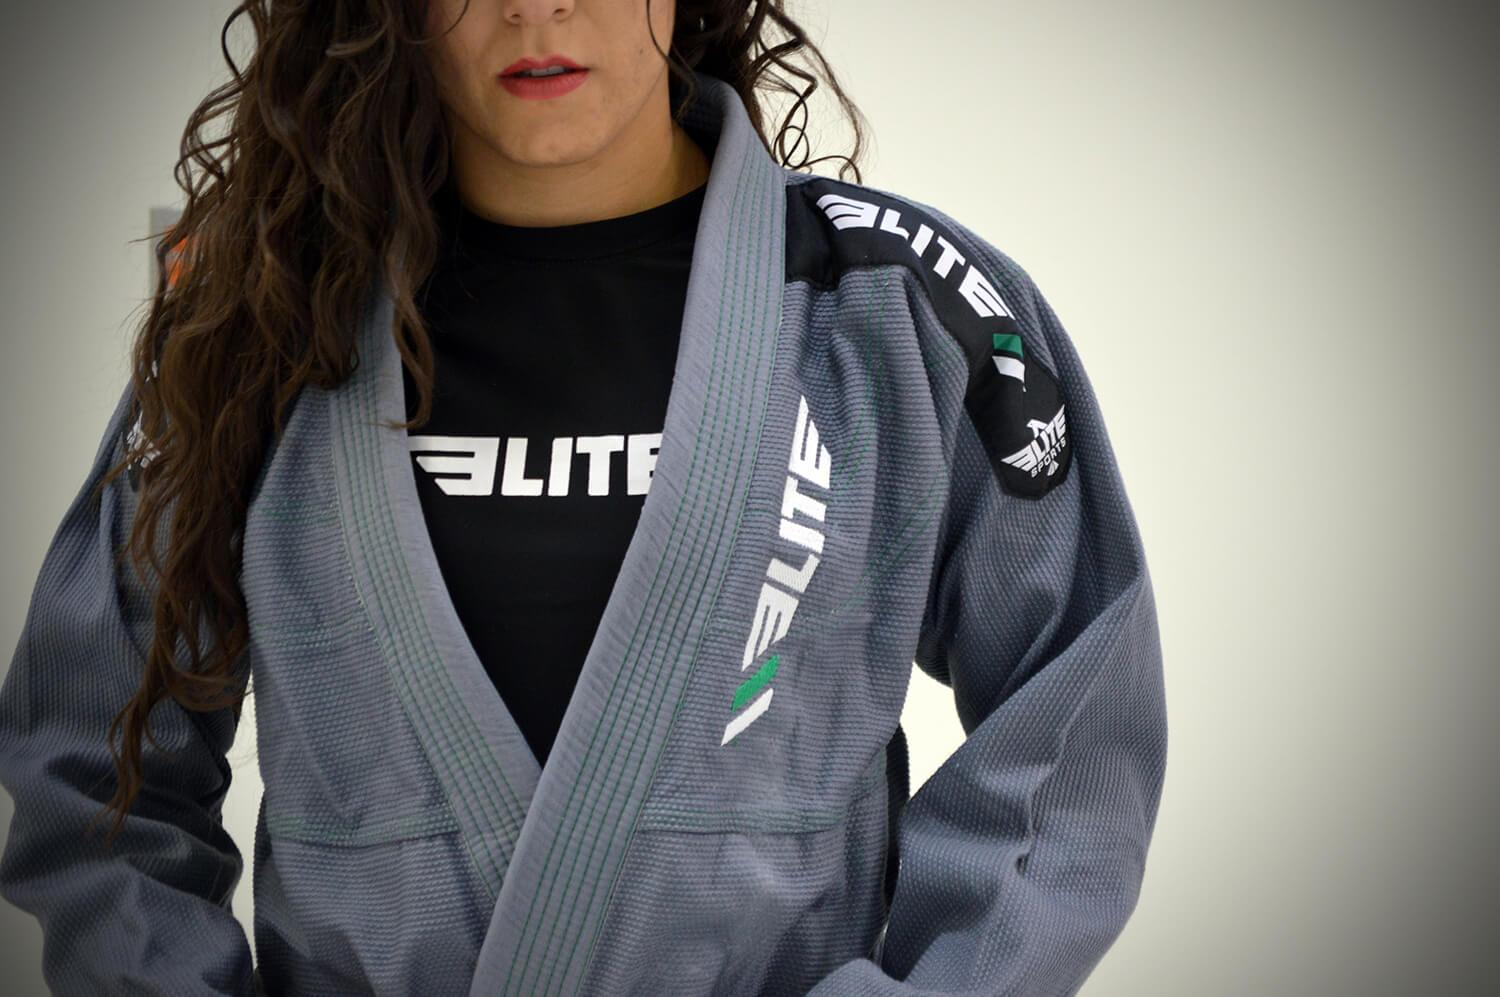 Elite-sports-Team-Elite-NO GI-Andria-Torrez-image5.jpeg